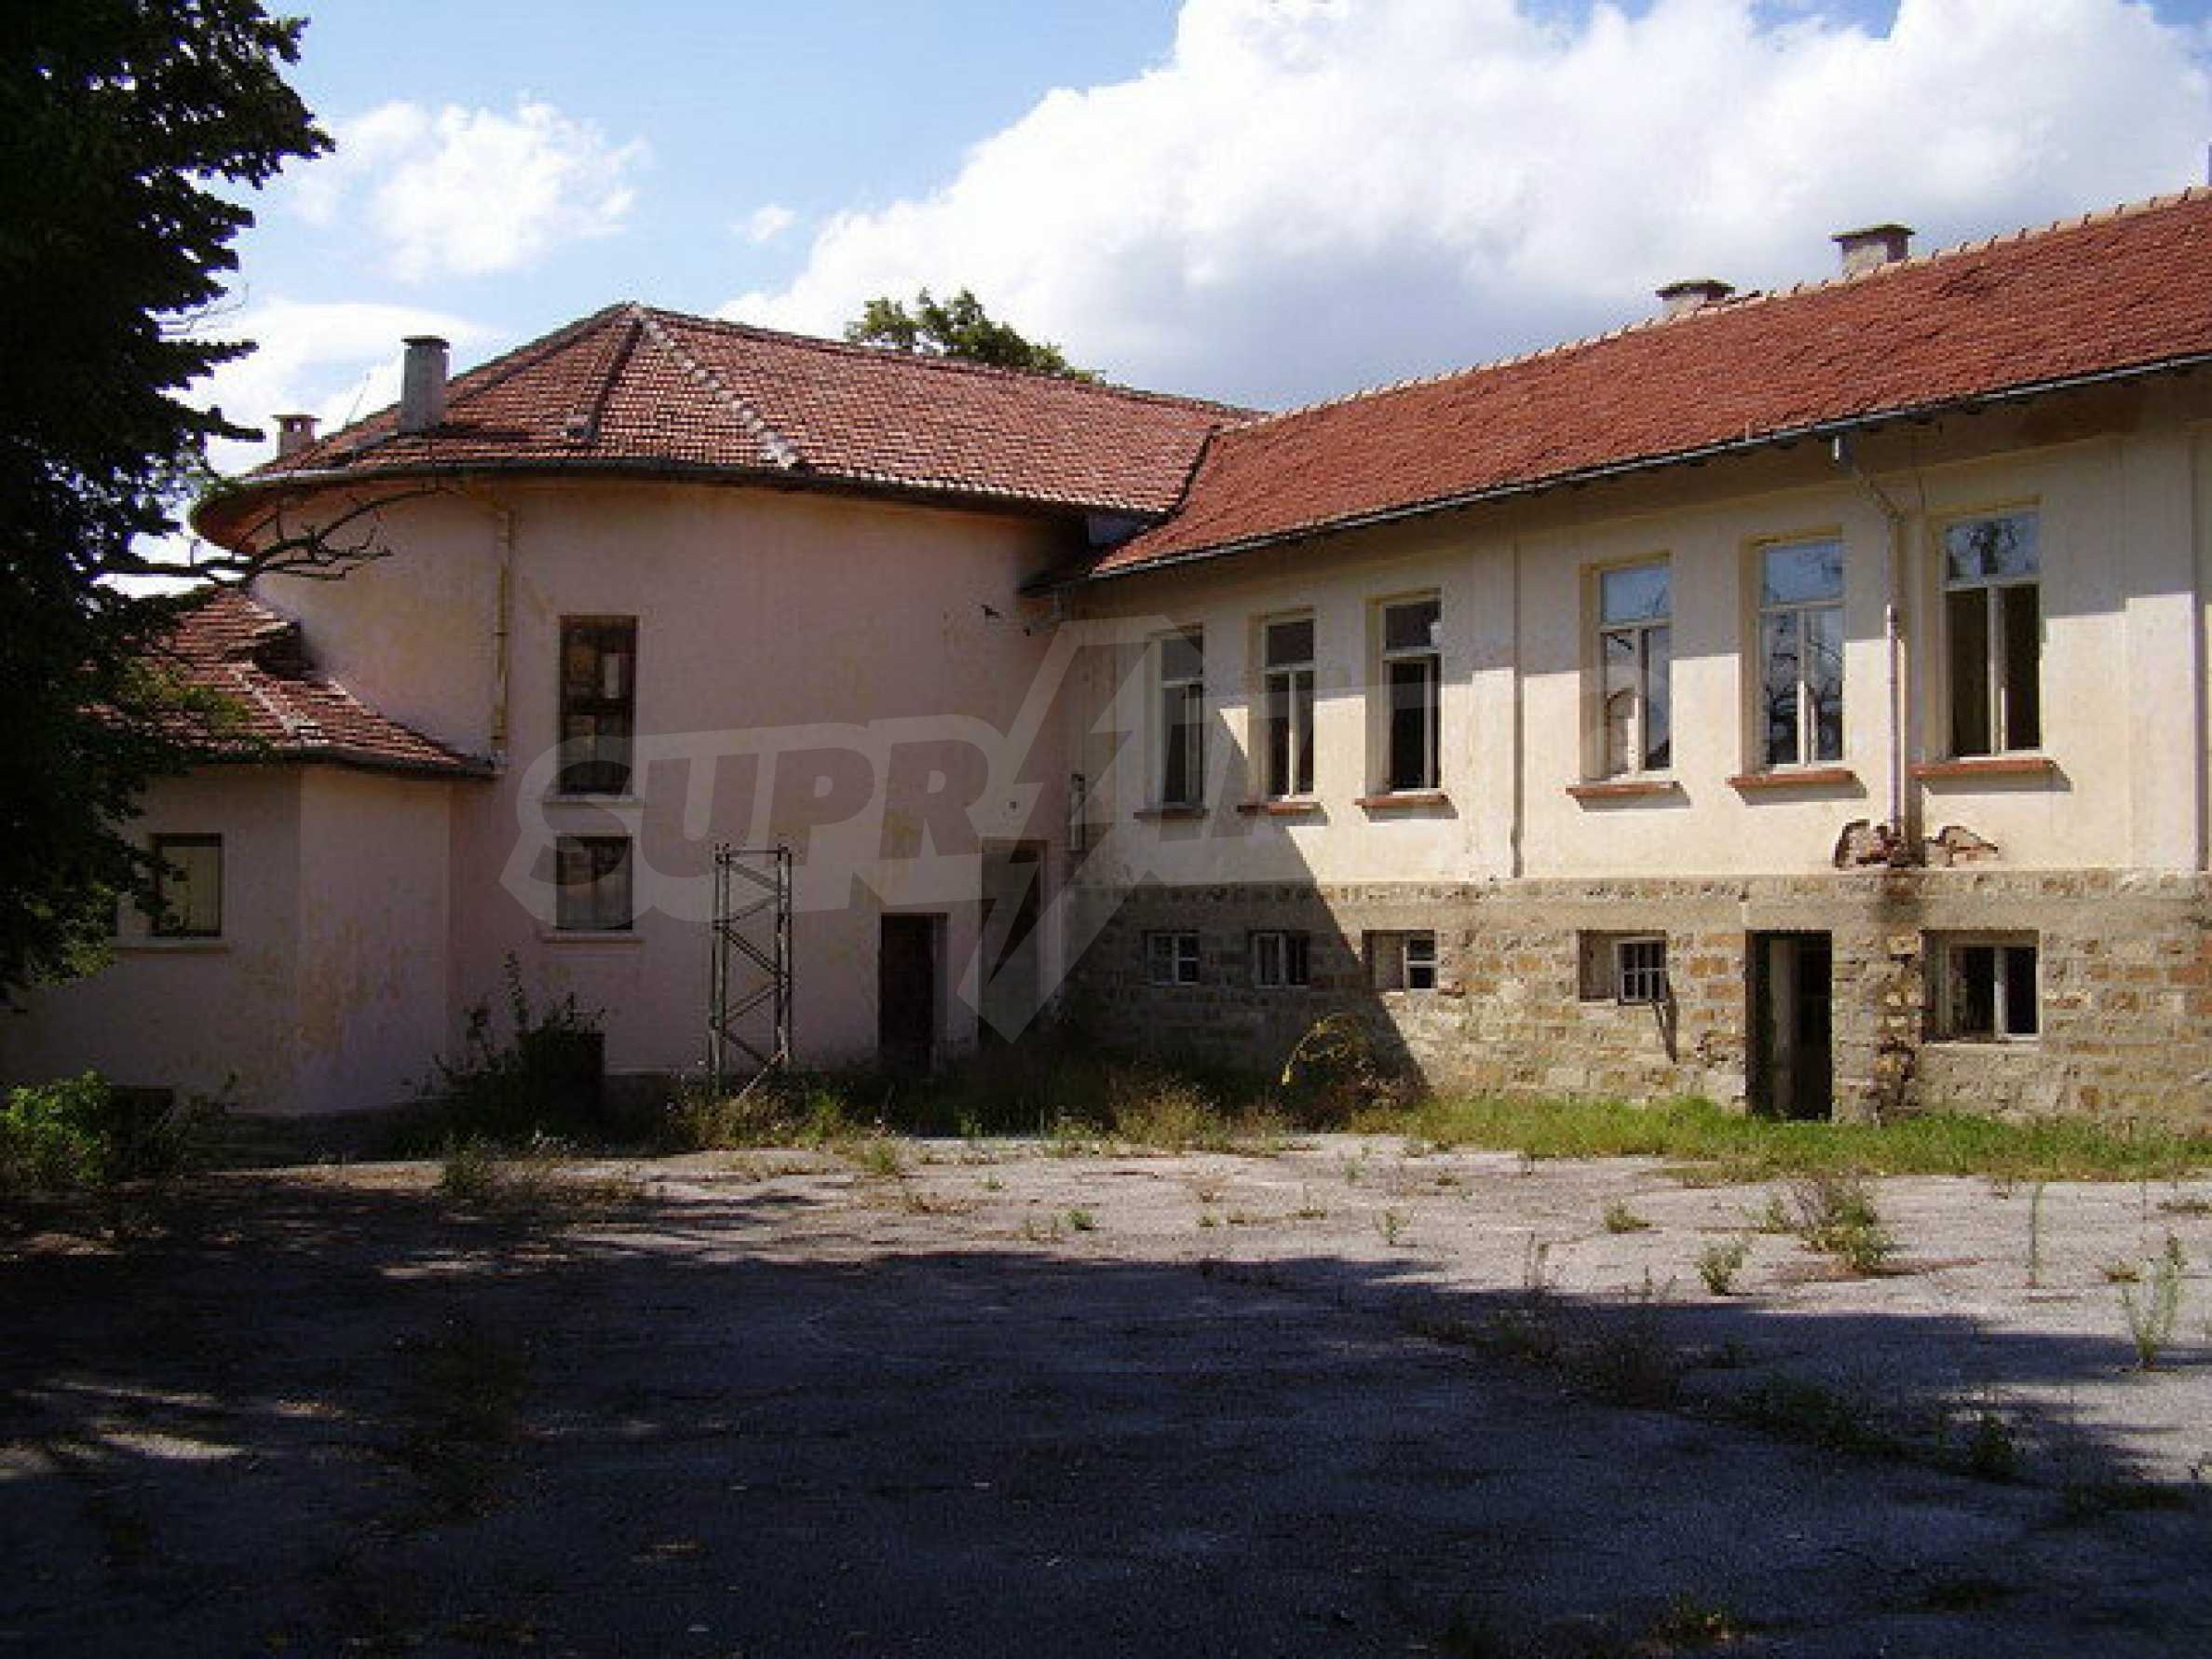 Old school in a village located between towns Dryanovo and Kilifarevo